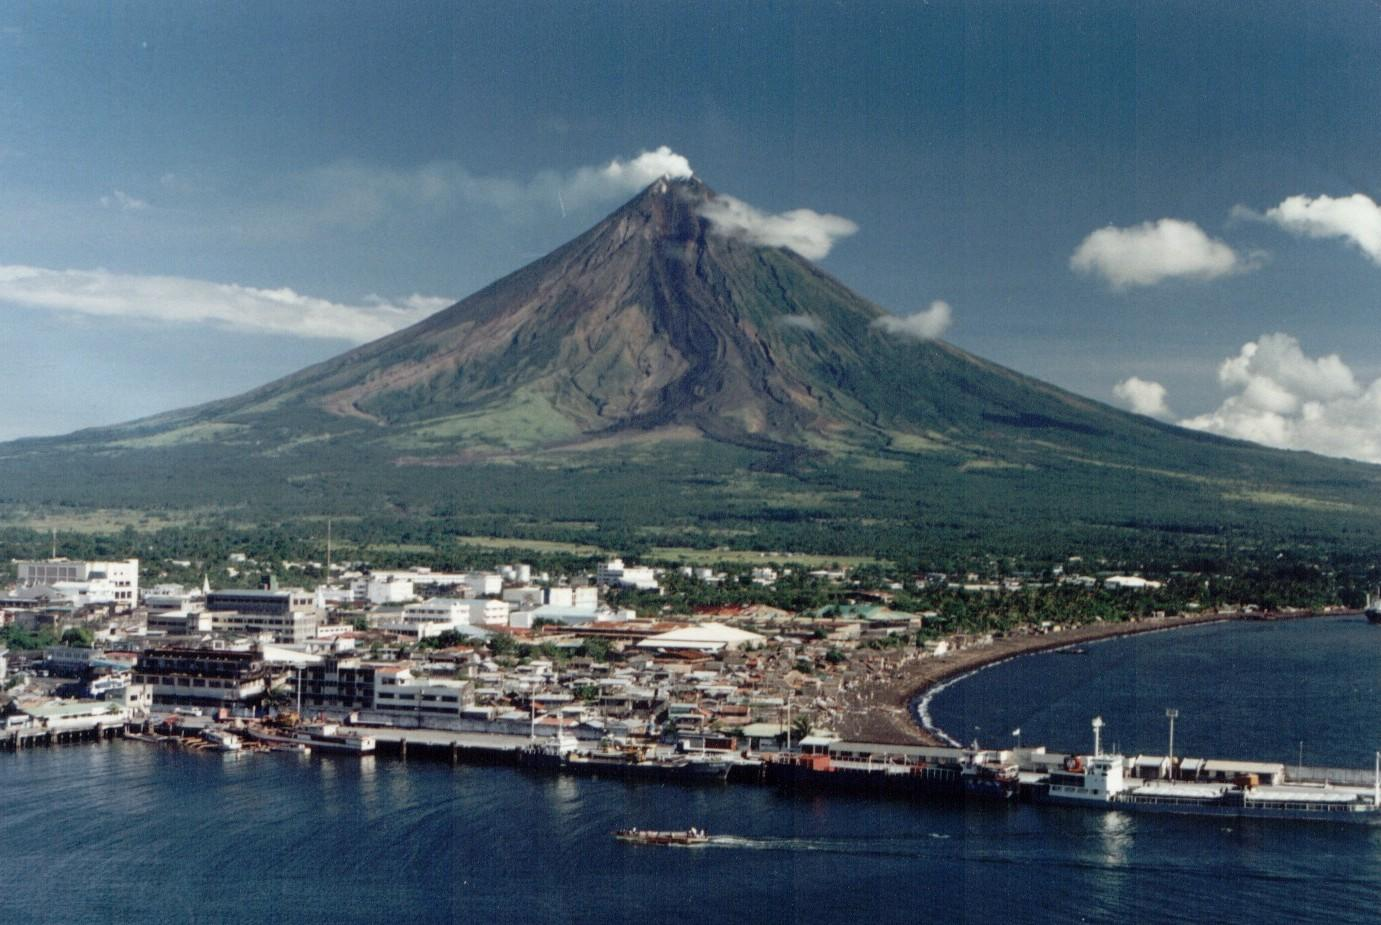 mayon volcano in philippines - photo #25